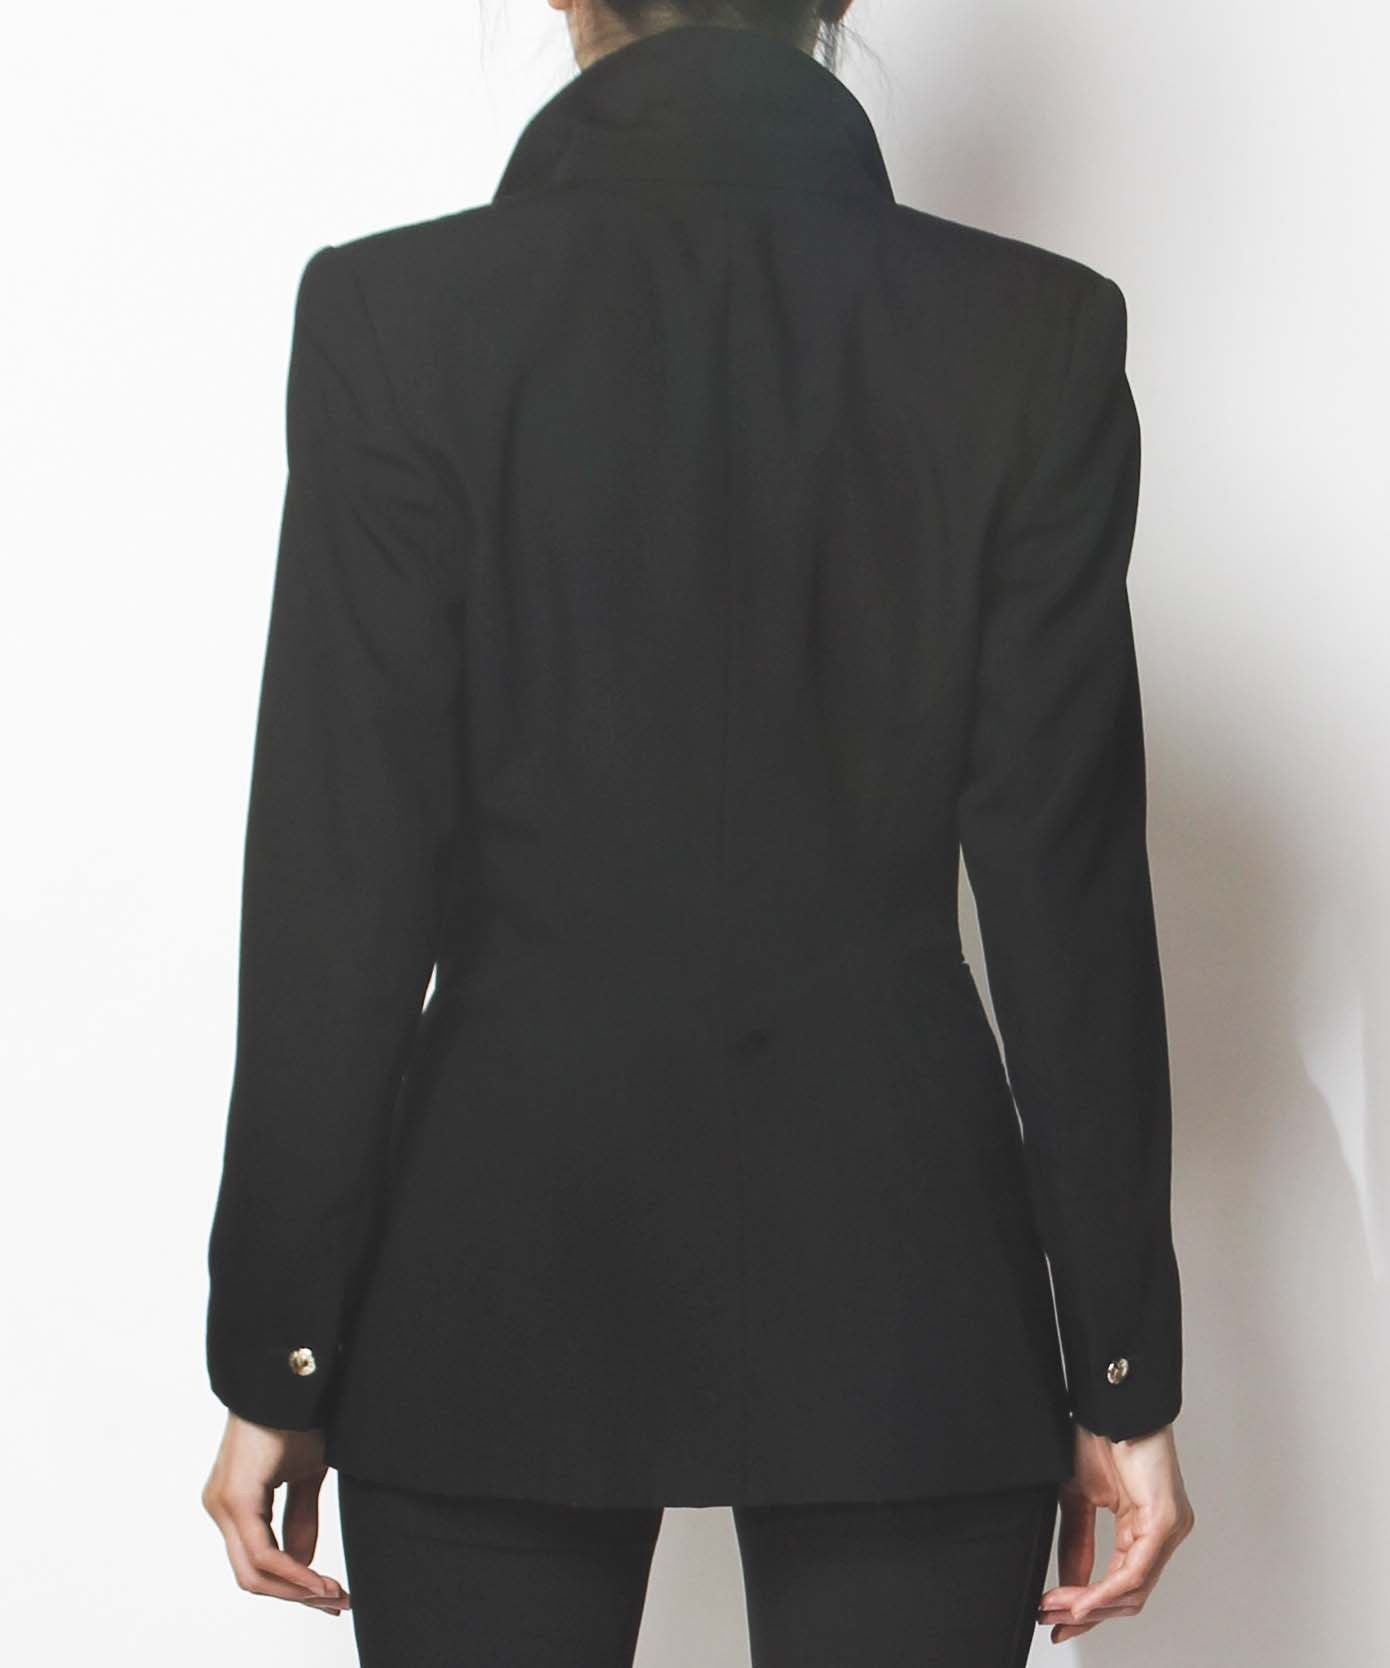 Claude Montana Black Long Blazer with Chain Detail - C.Madeleine's